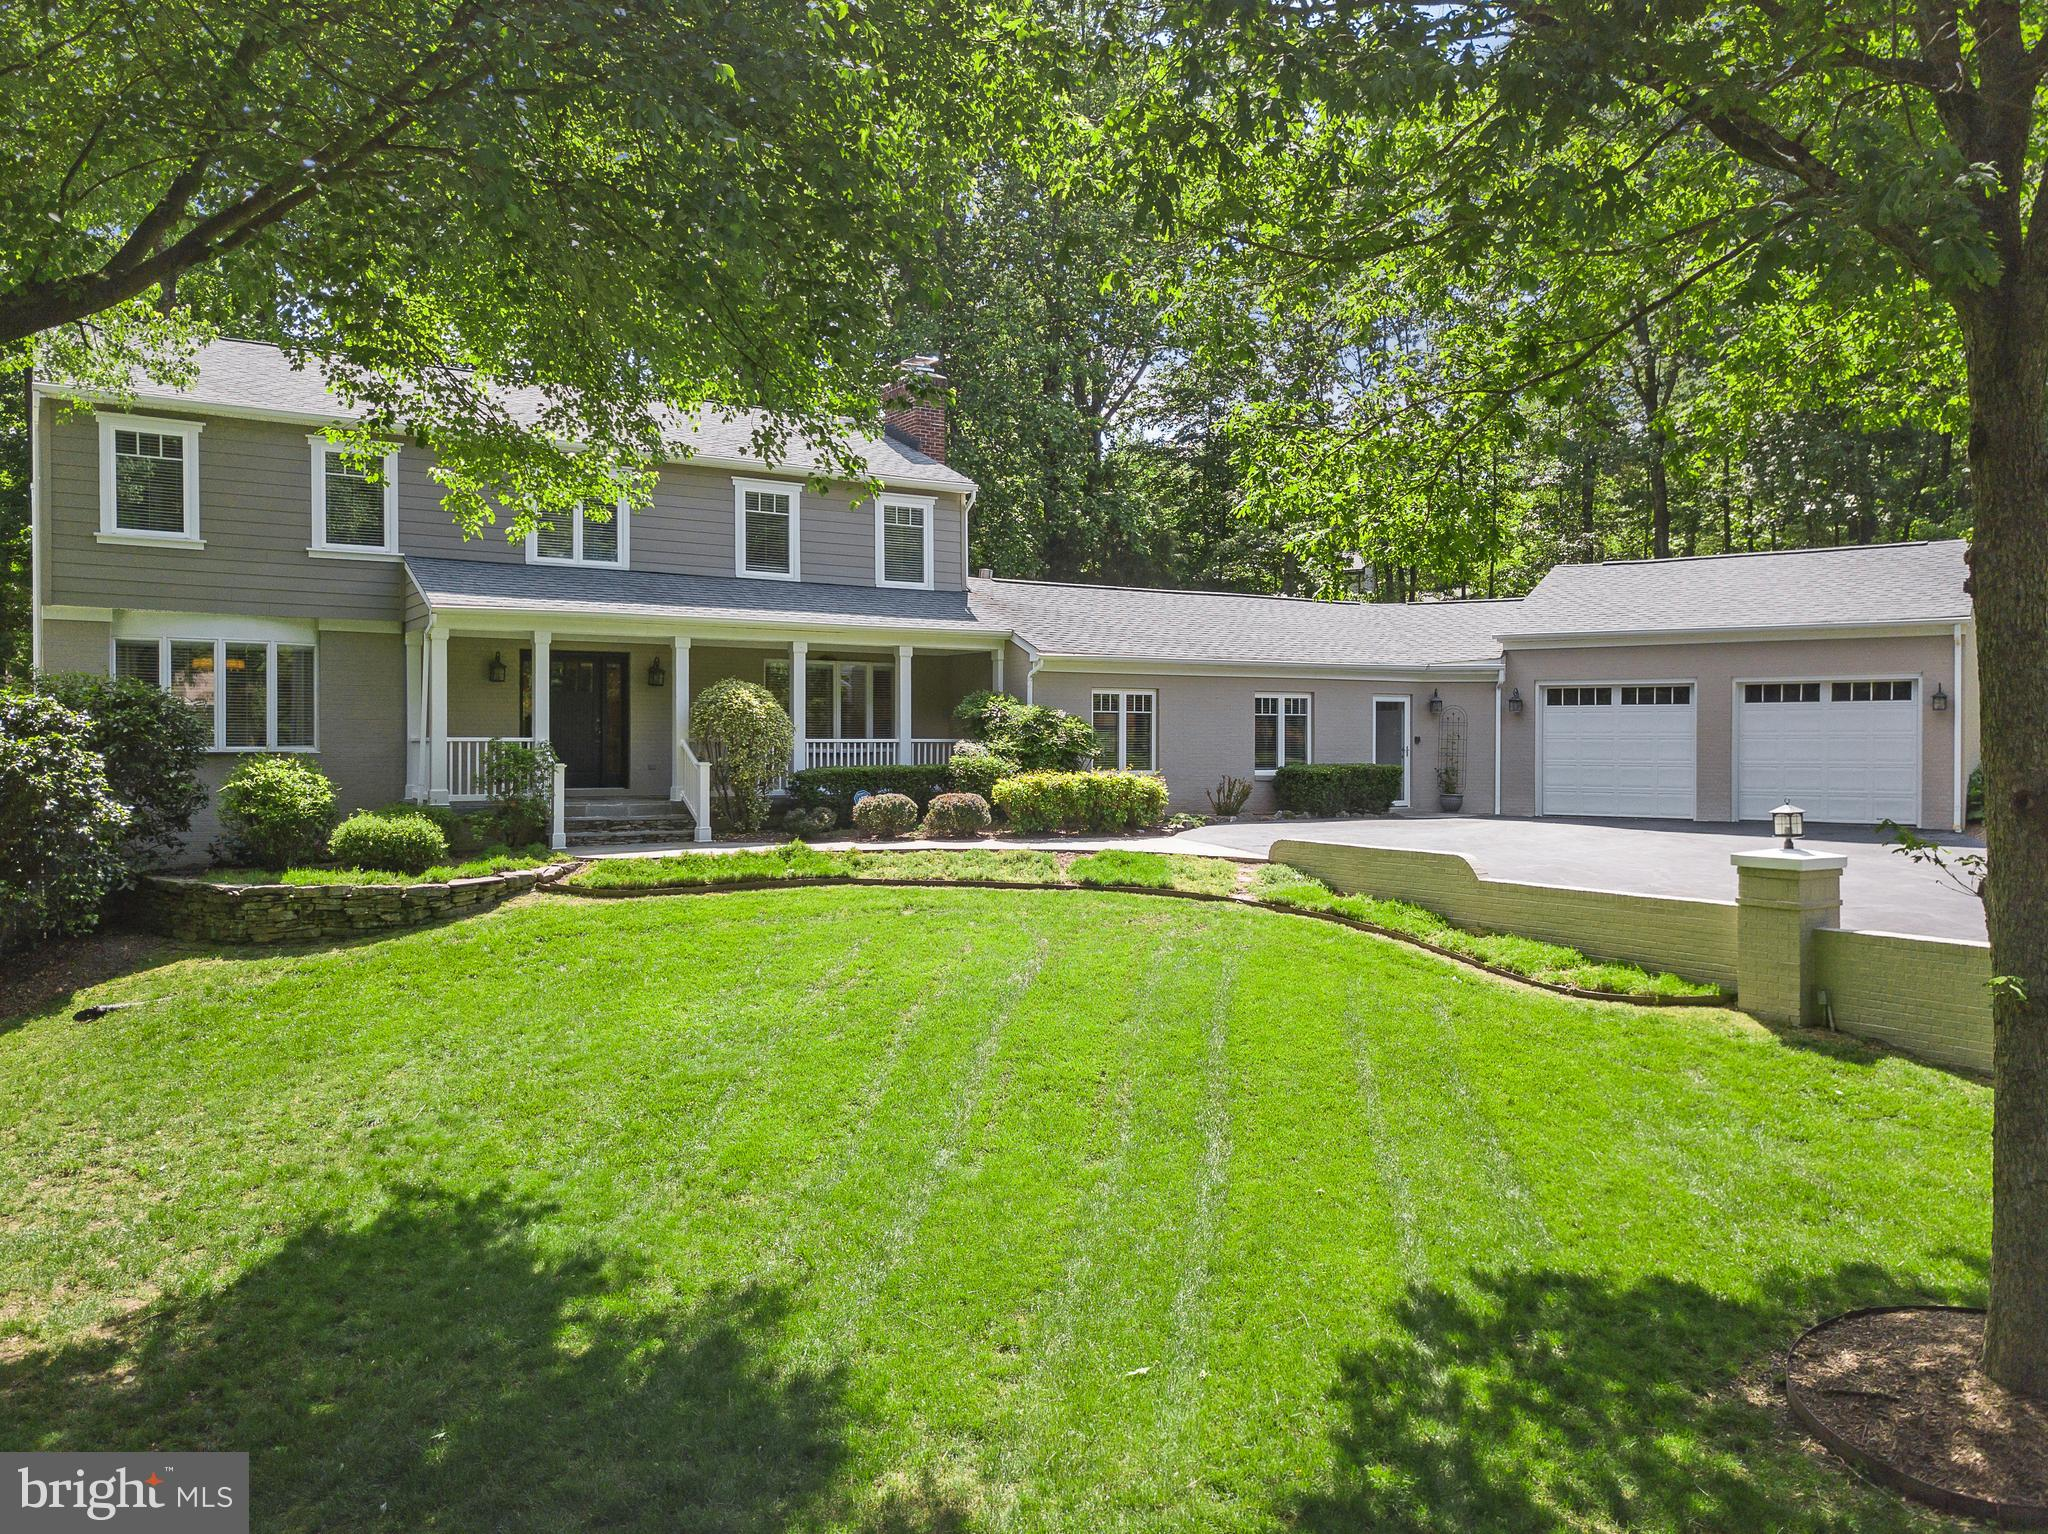 PRISTINE 2.25 acre PRIVATE sanctuary setting with a SPECTACULAR home.             Over $300K in recent, gorgeous updates. NO detail has been overlooked. The craftsman style finishes are high end.  The design is stunning, yet warm, and you will be impressed on ALL three levels of the home.              New KITCHEN, New Bathrooms, New Design, Slate Path and Large Covered Porch,  NEW Expresso Hardwood Flooring, Wood Banisters, Wide Baseboards and Crown Mouldings, Custom Wainscoting, Shiplap, Quartz Wet Bar, All WINDOWS, Doors, Hardieplank Siding ~ too much to list!                    SEE this show stopper today.BIG Bedrooms, Main Level Office, Family Room, Living Room, Formal Dining Room,  Breakfast Room,  Solatium/Atrium, Recreation/Theatre Room, Guest Area, Entertaining Bar Area,  Walk Out to OVERSIZED Inground POOL.                          BEAUTIFULLY planned and cultivated lot with mature trees, flowering plants, healthy  open yard spaces, and hardscape.                      Located at the end of a private cul de saq, this natural oasis features an inground pool for true stay-cation fun and relaxation. You MUST SEE THIS HOME. TOP END Custom Value for a person who appreciates quality, privacy and serenity.                                   You really won't want to leave home!                                   Open Sat 12 - 3 and Sunday 1-4pm              CLICK the camera ICON   SEE THE TOUR HERE